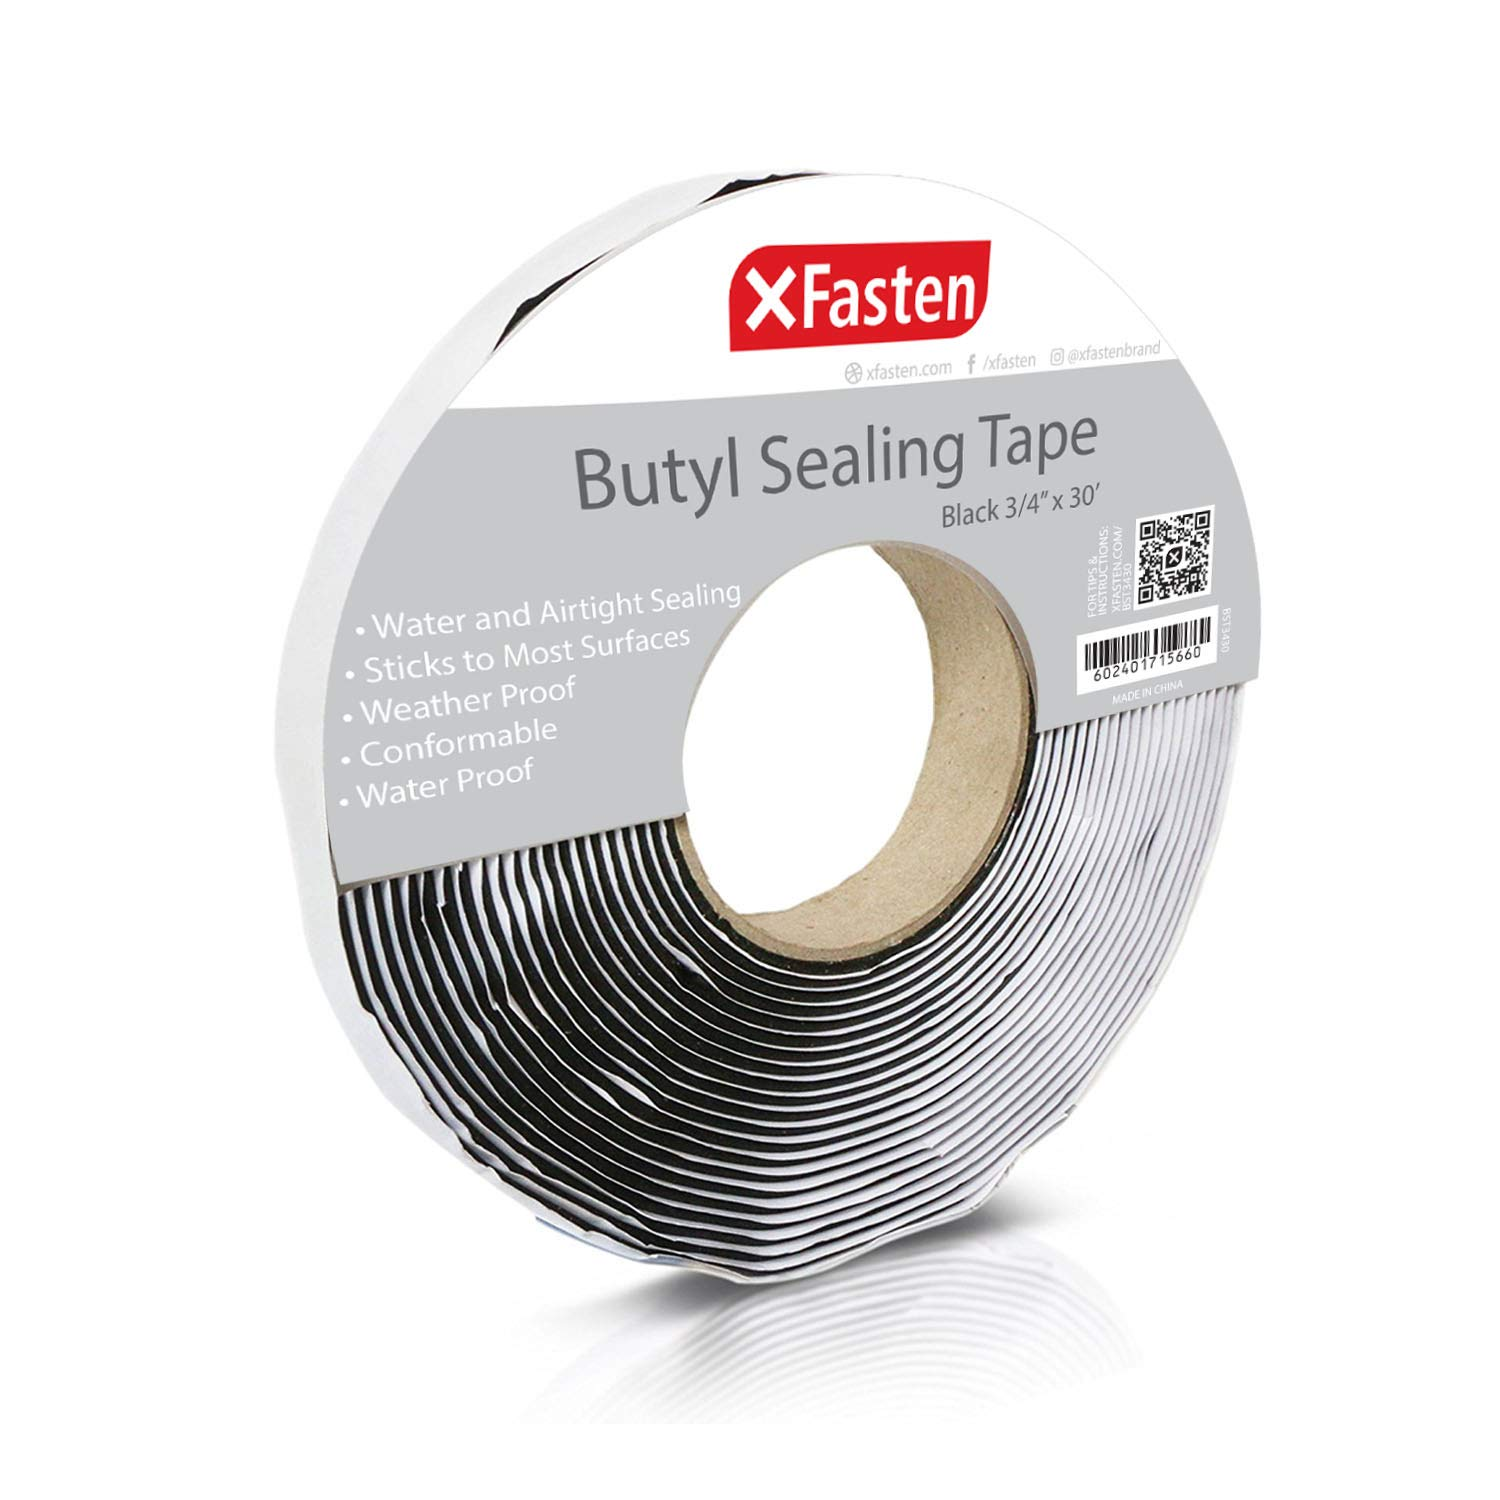 XFasten Black Butyl Seal Tape 1/8-Inch x 3/4-Inch x 30-Foot Leak Proof Putty Tape for RV Repair, Window, Boat Sealing, Glass and EDPM Rubber Roof Patching by XFasten